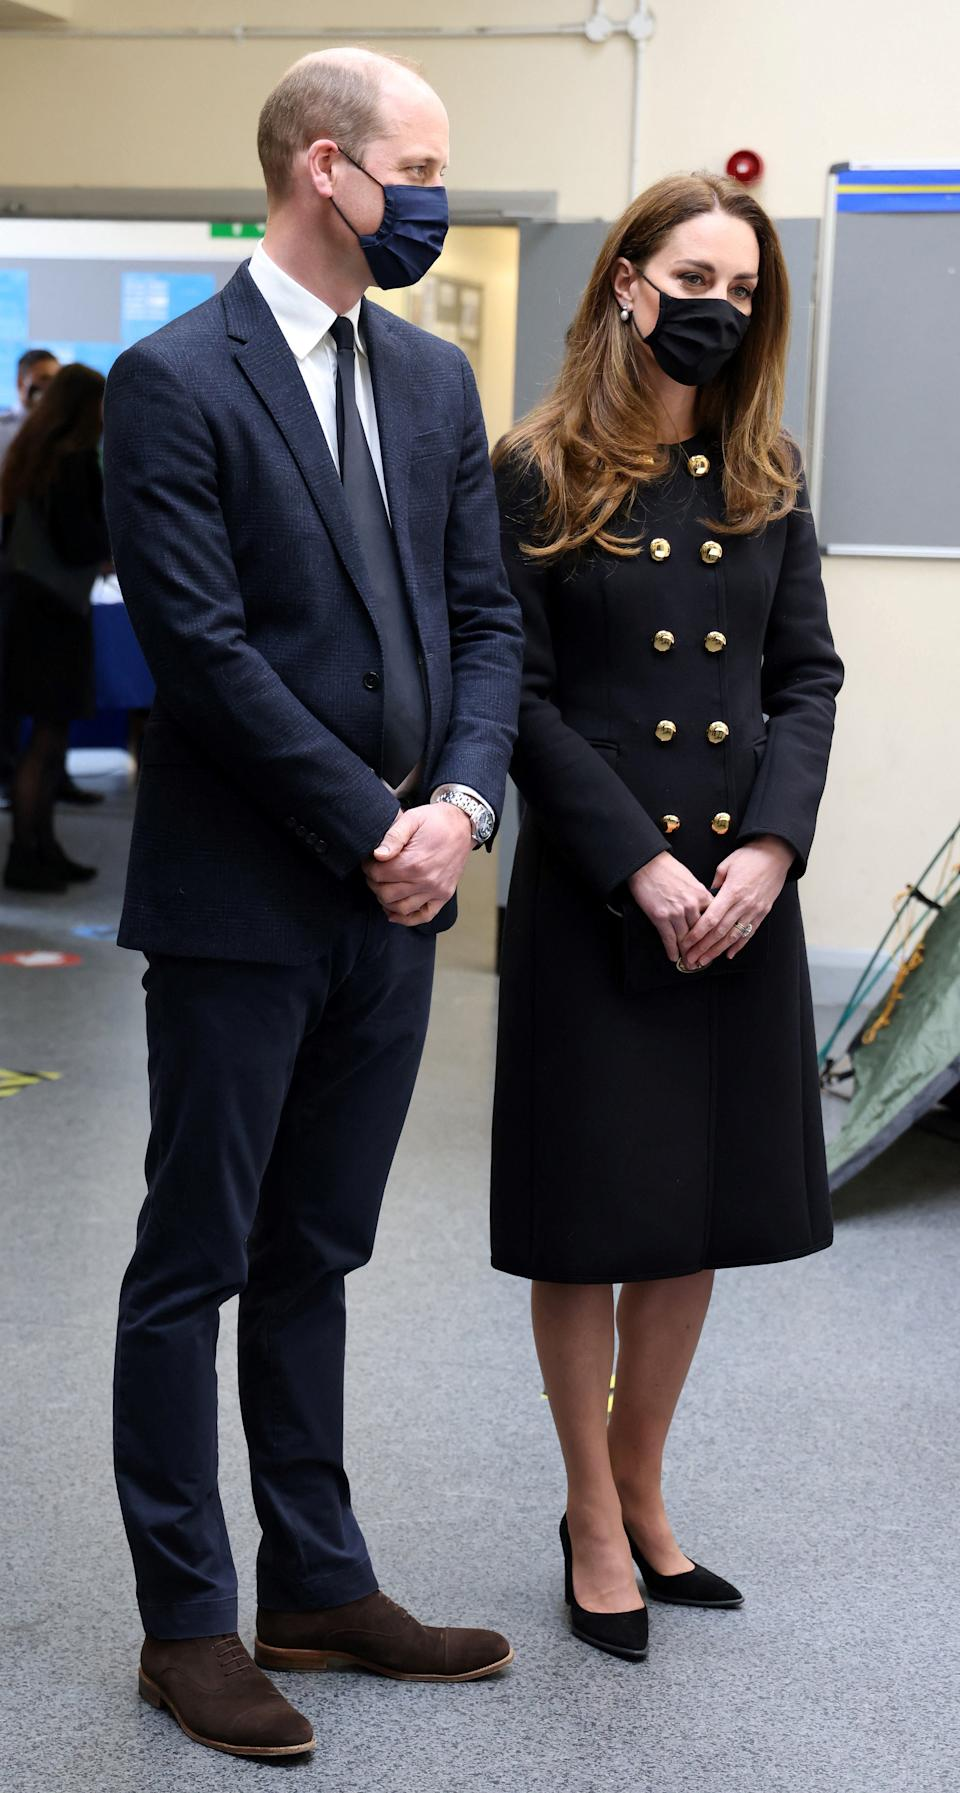 Britain's Prince William, Duke of Cambridge, and Britain's Catherine, Duchess of Cambridge, wearing black as a mark of respect following the death of Britain's Prince Philip, Duke of Edinburgh, and a face covering to combat the spread of Covid-19, talk with Air Cadets during their visit to 282 (East Ham) Squadron Air Training Corps in east London on April 21, 2021. - During the visit, the Squadron paid tribute to The Duke of Edinburgh, who served as Air Commodore-in-Chief of the Air Training Corps for 63 years. In 2015, The Duke passed the military patronage to The Duchess of Cambridge who became Honorary Air Commandant. (Photo by Ian Vogler / POOL / AFP) (Photo by IAN VOGLER/POOL/AFP via Getty Images)